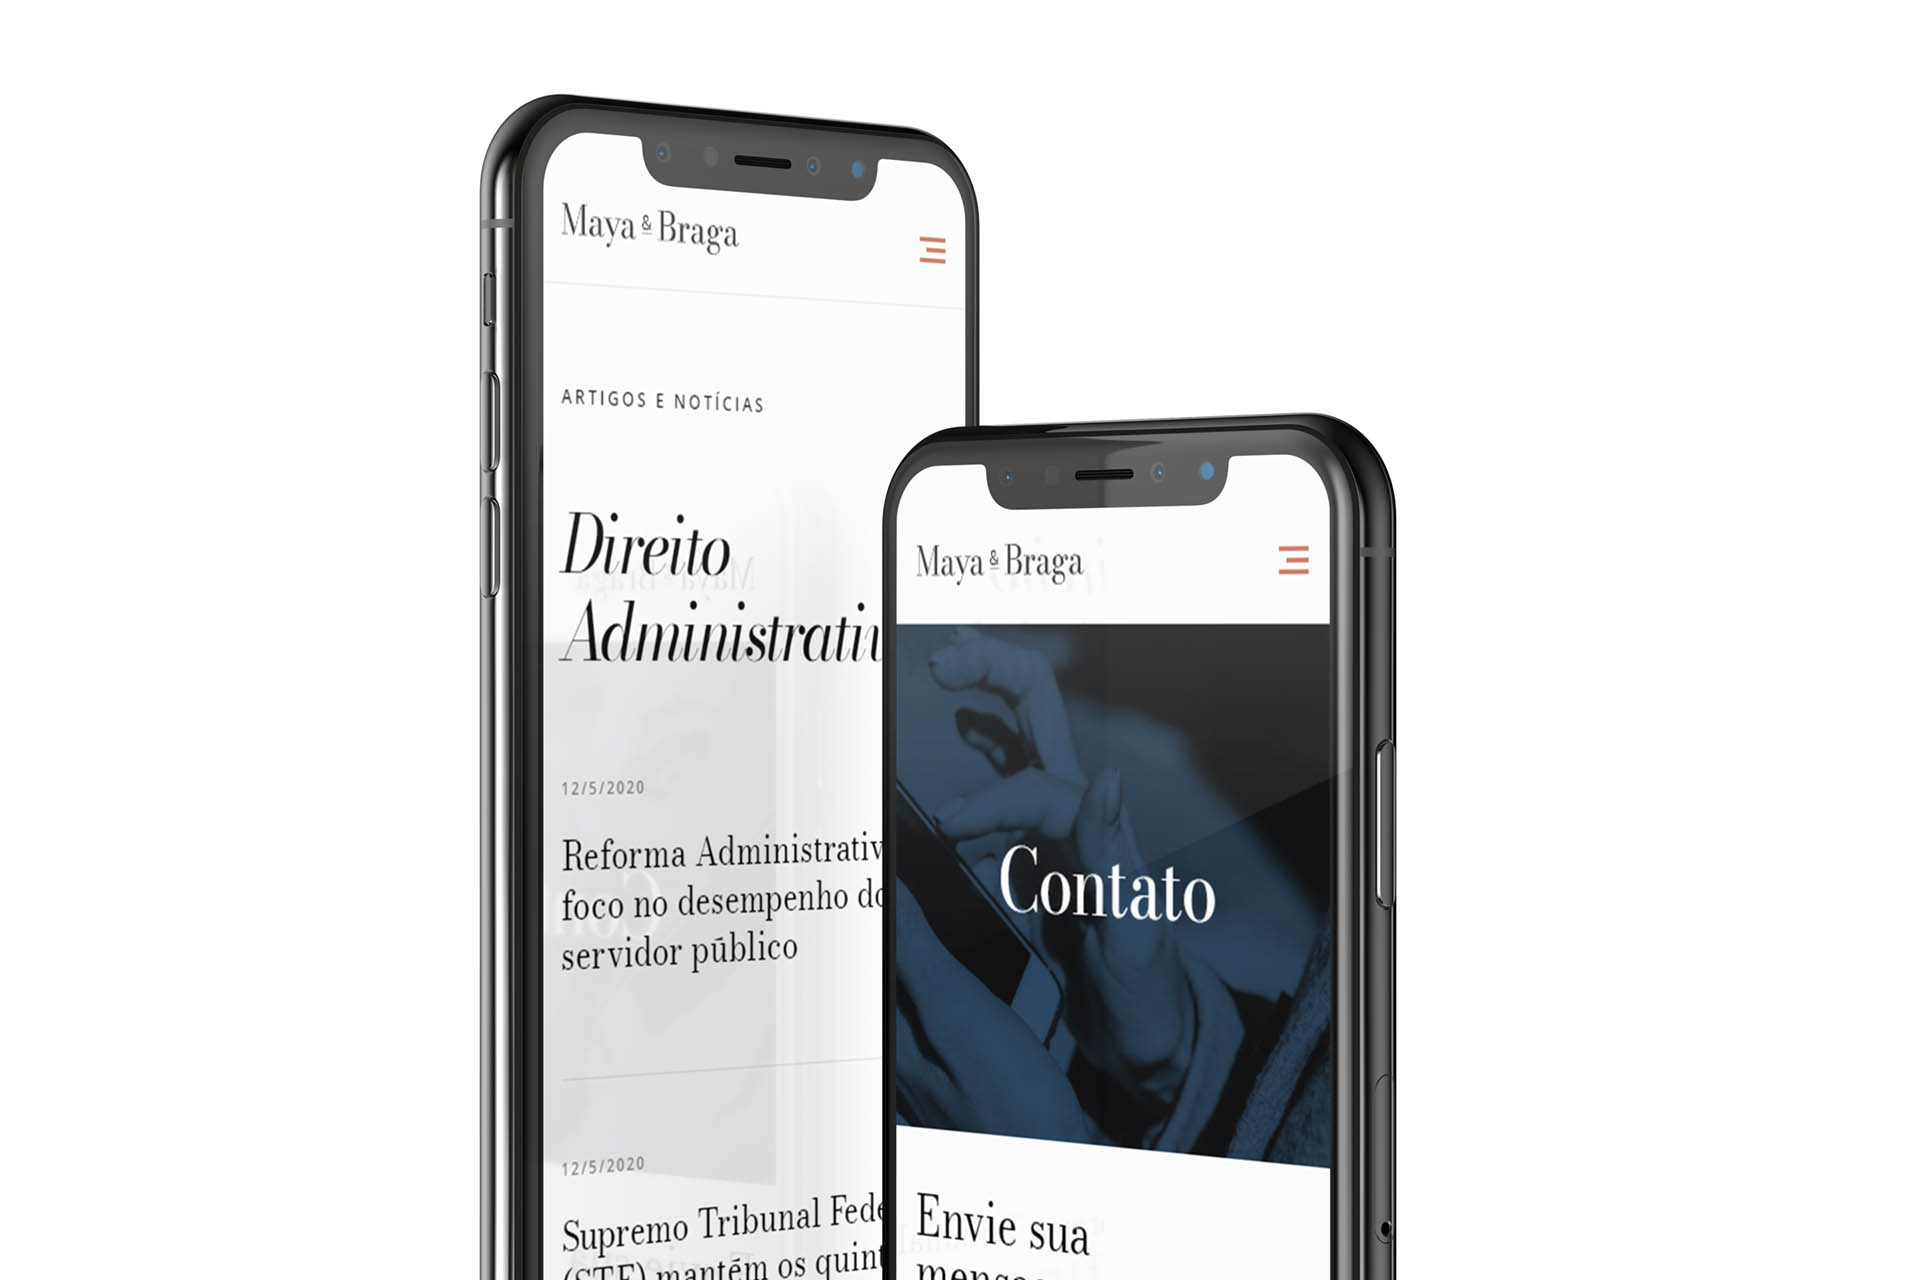 Maya e Braga's website pages displayed on iphone